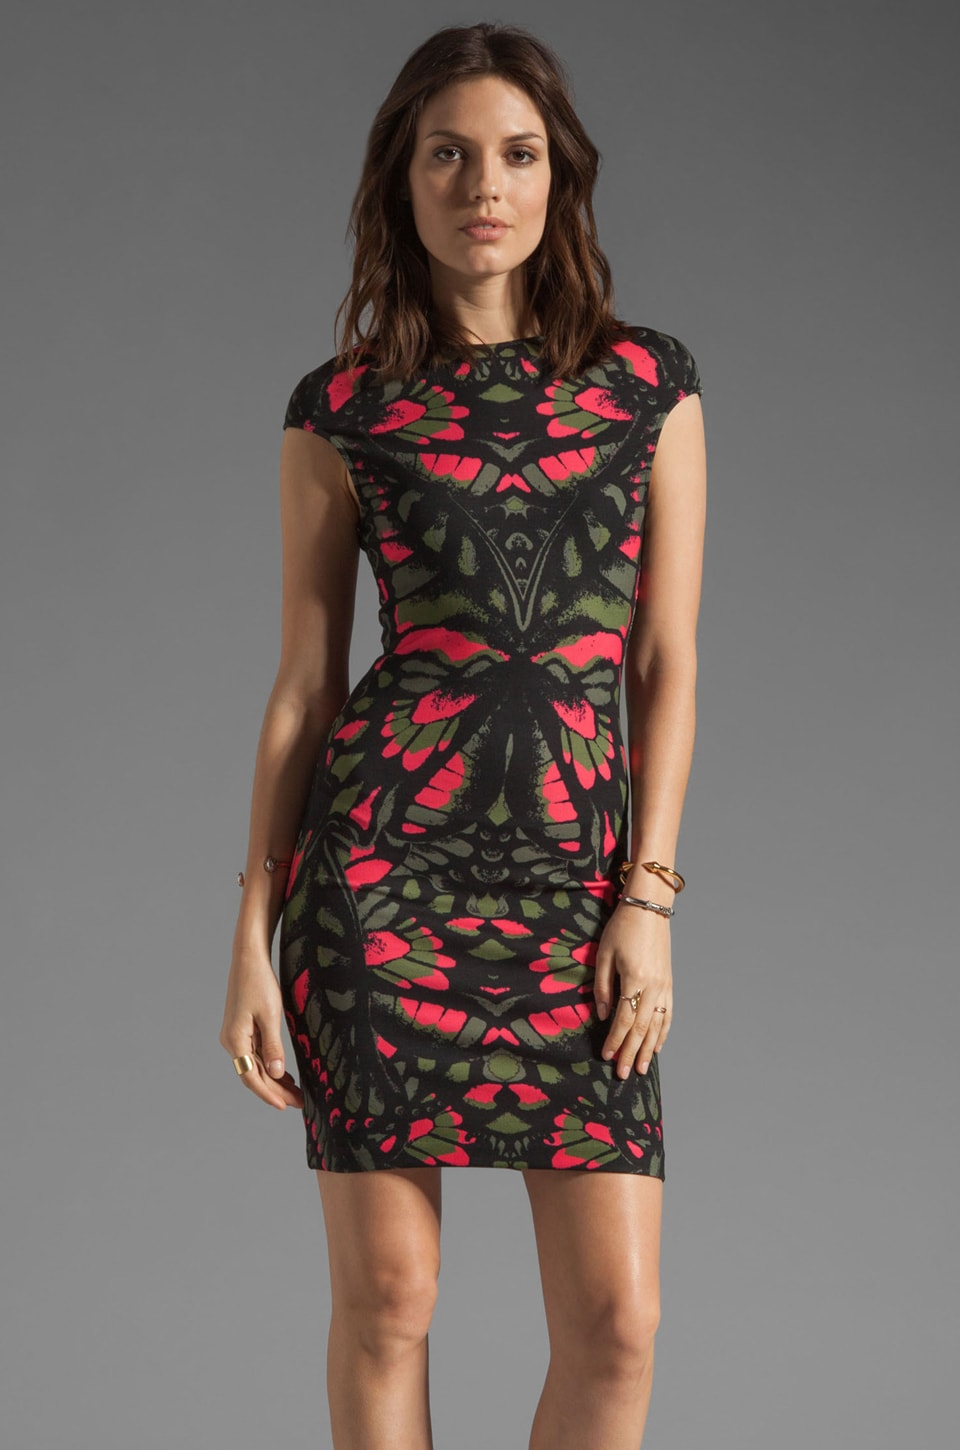 McQ Alexander McQueen Cap Sleeve Dress in Pink/Military/Trench